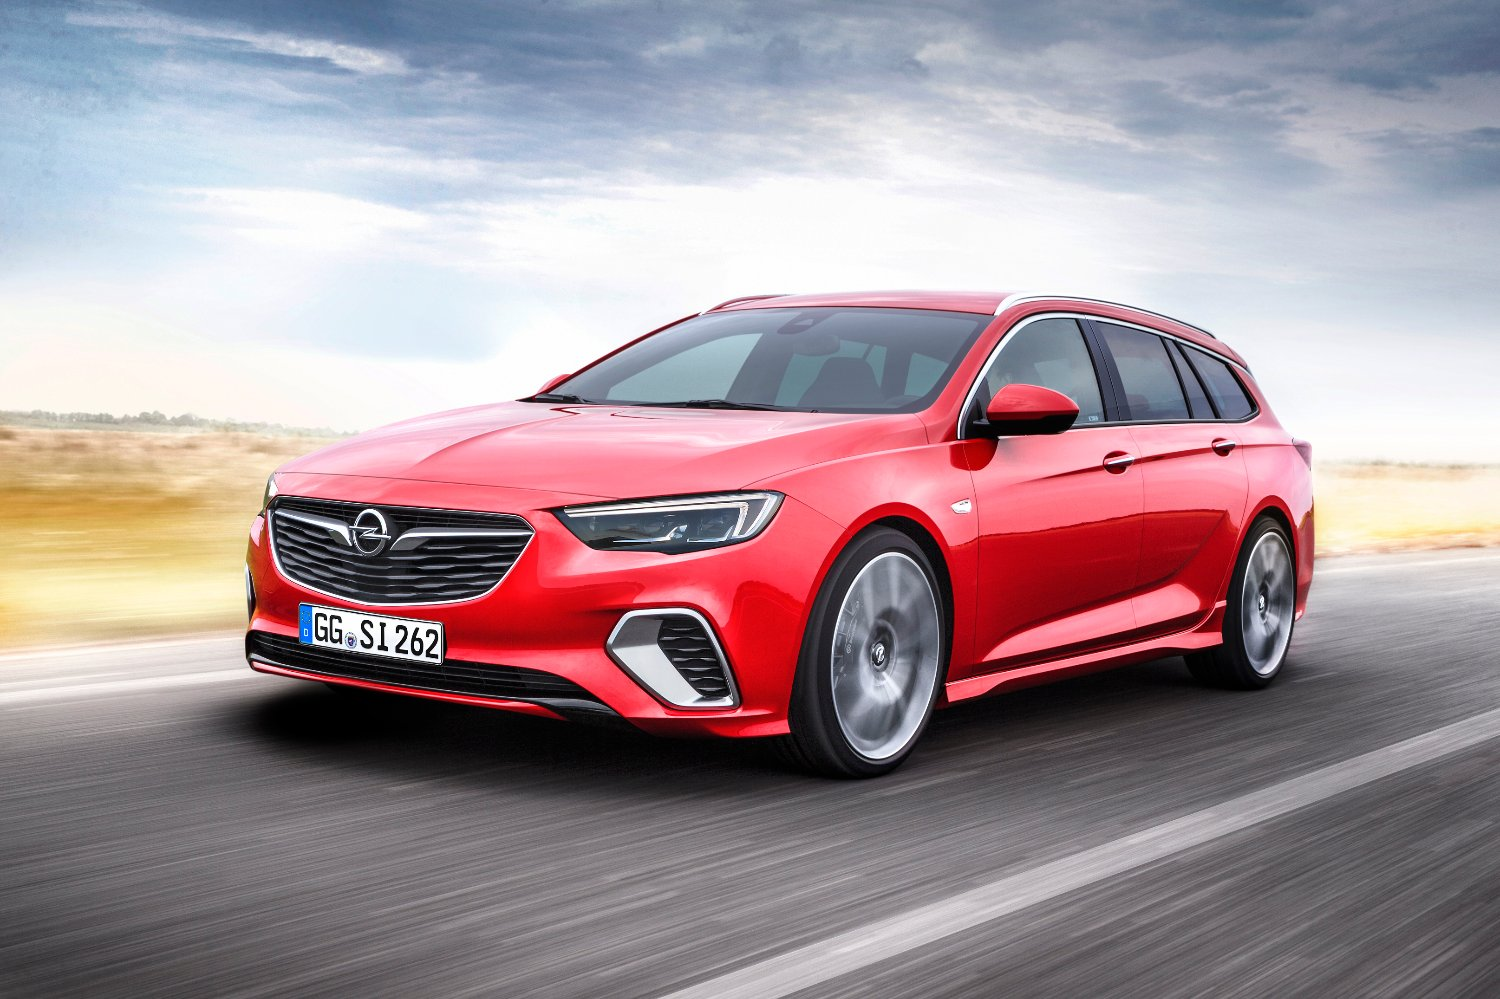 Sharp, powerful, Opel Insignia GSi Sports Tourer: The sporty, uncompromising station wagon